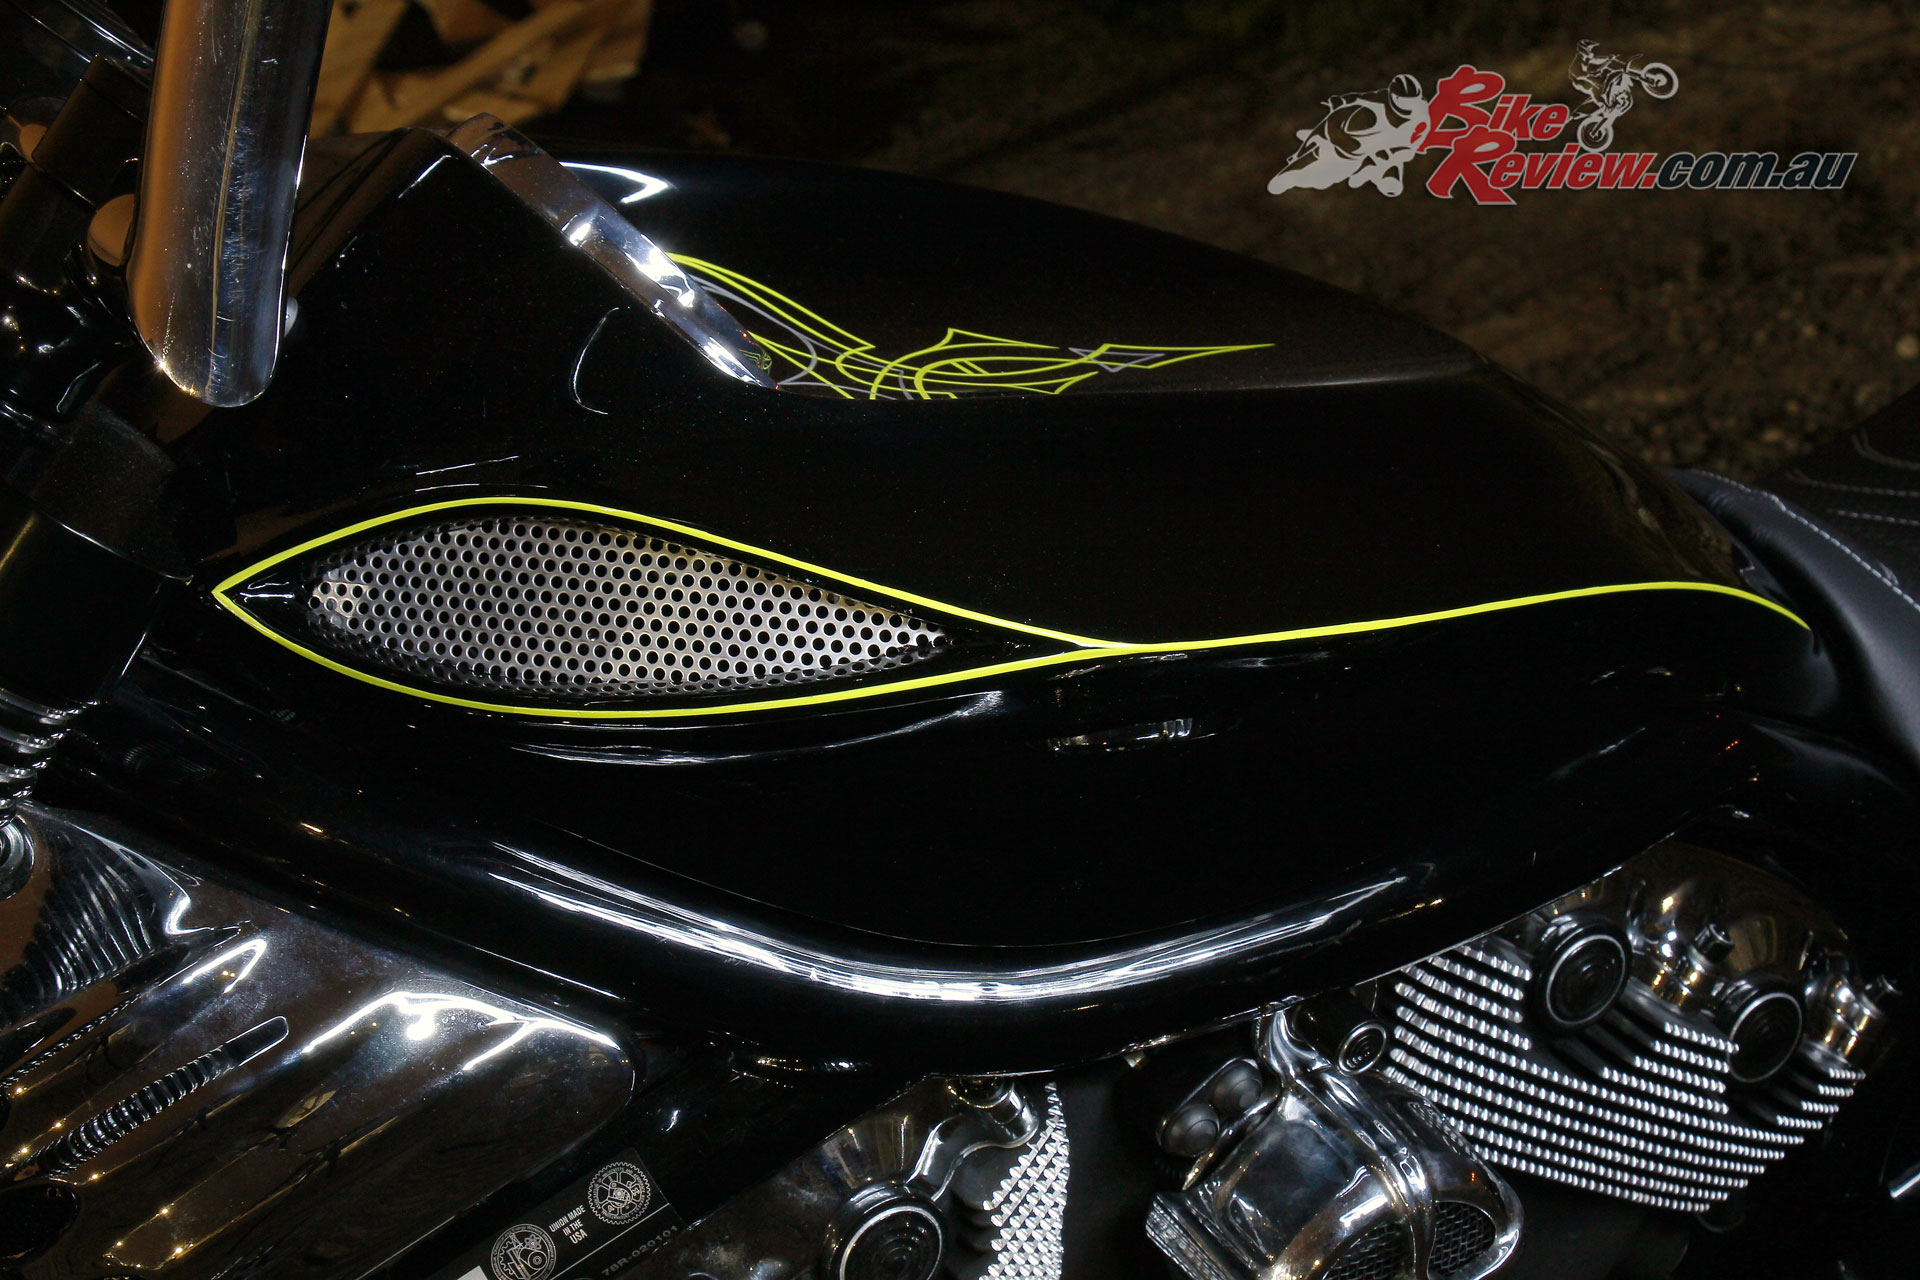 Pega Custom Cycles Eruption V-Rod - PCC tank lid